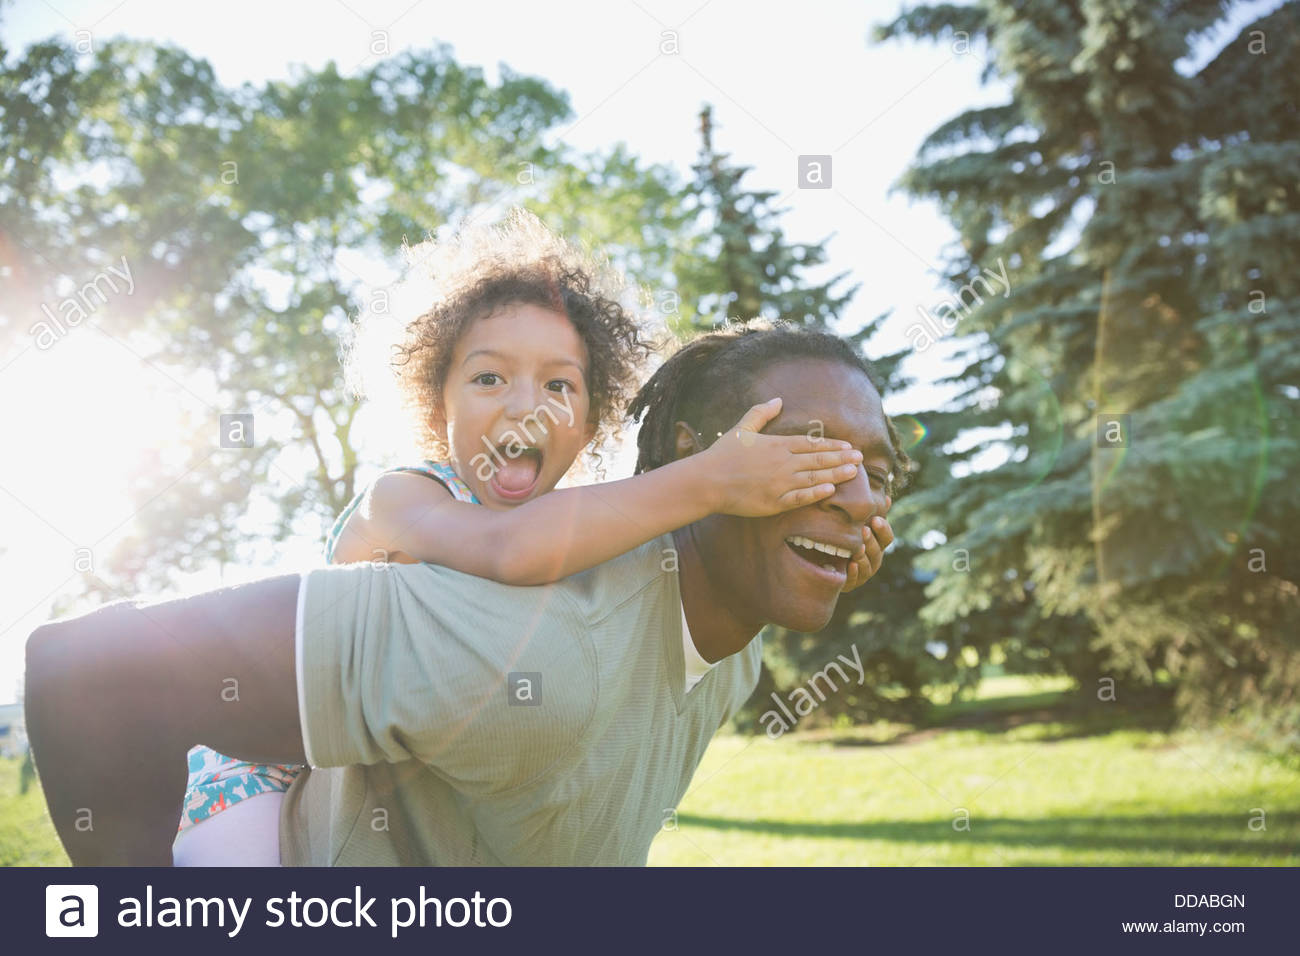 Portrait of playful girl covering fathers eyes in park - Stock Image